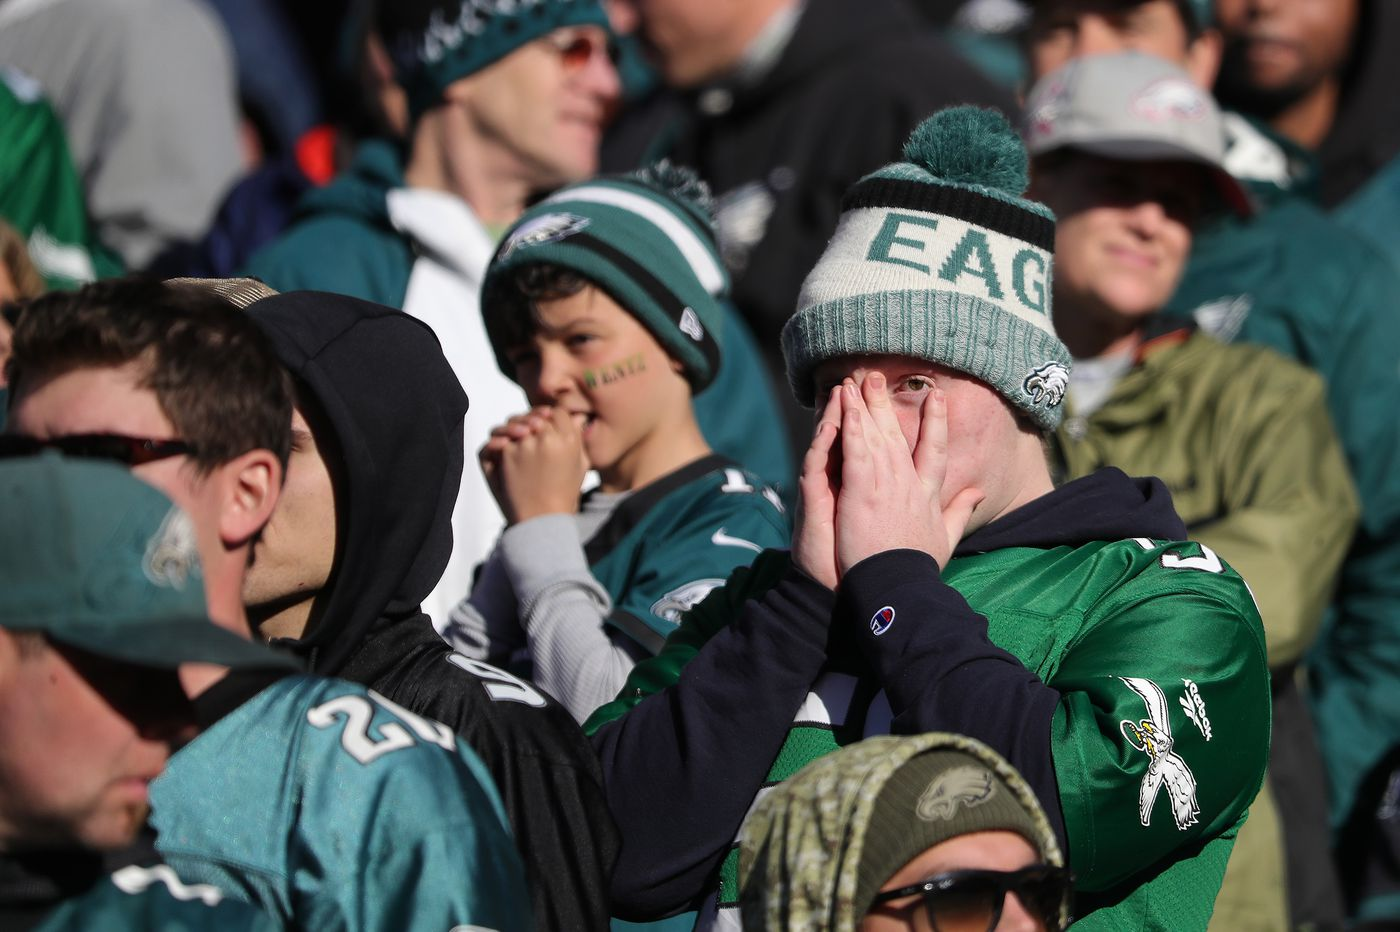 An epic collapse from the Eagles, a perplexing message from Doug Pederson | Early Birds